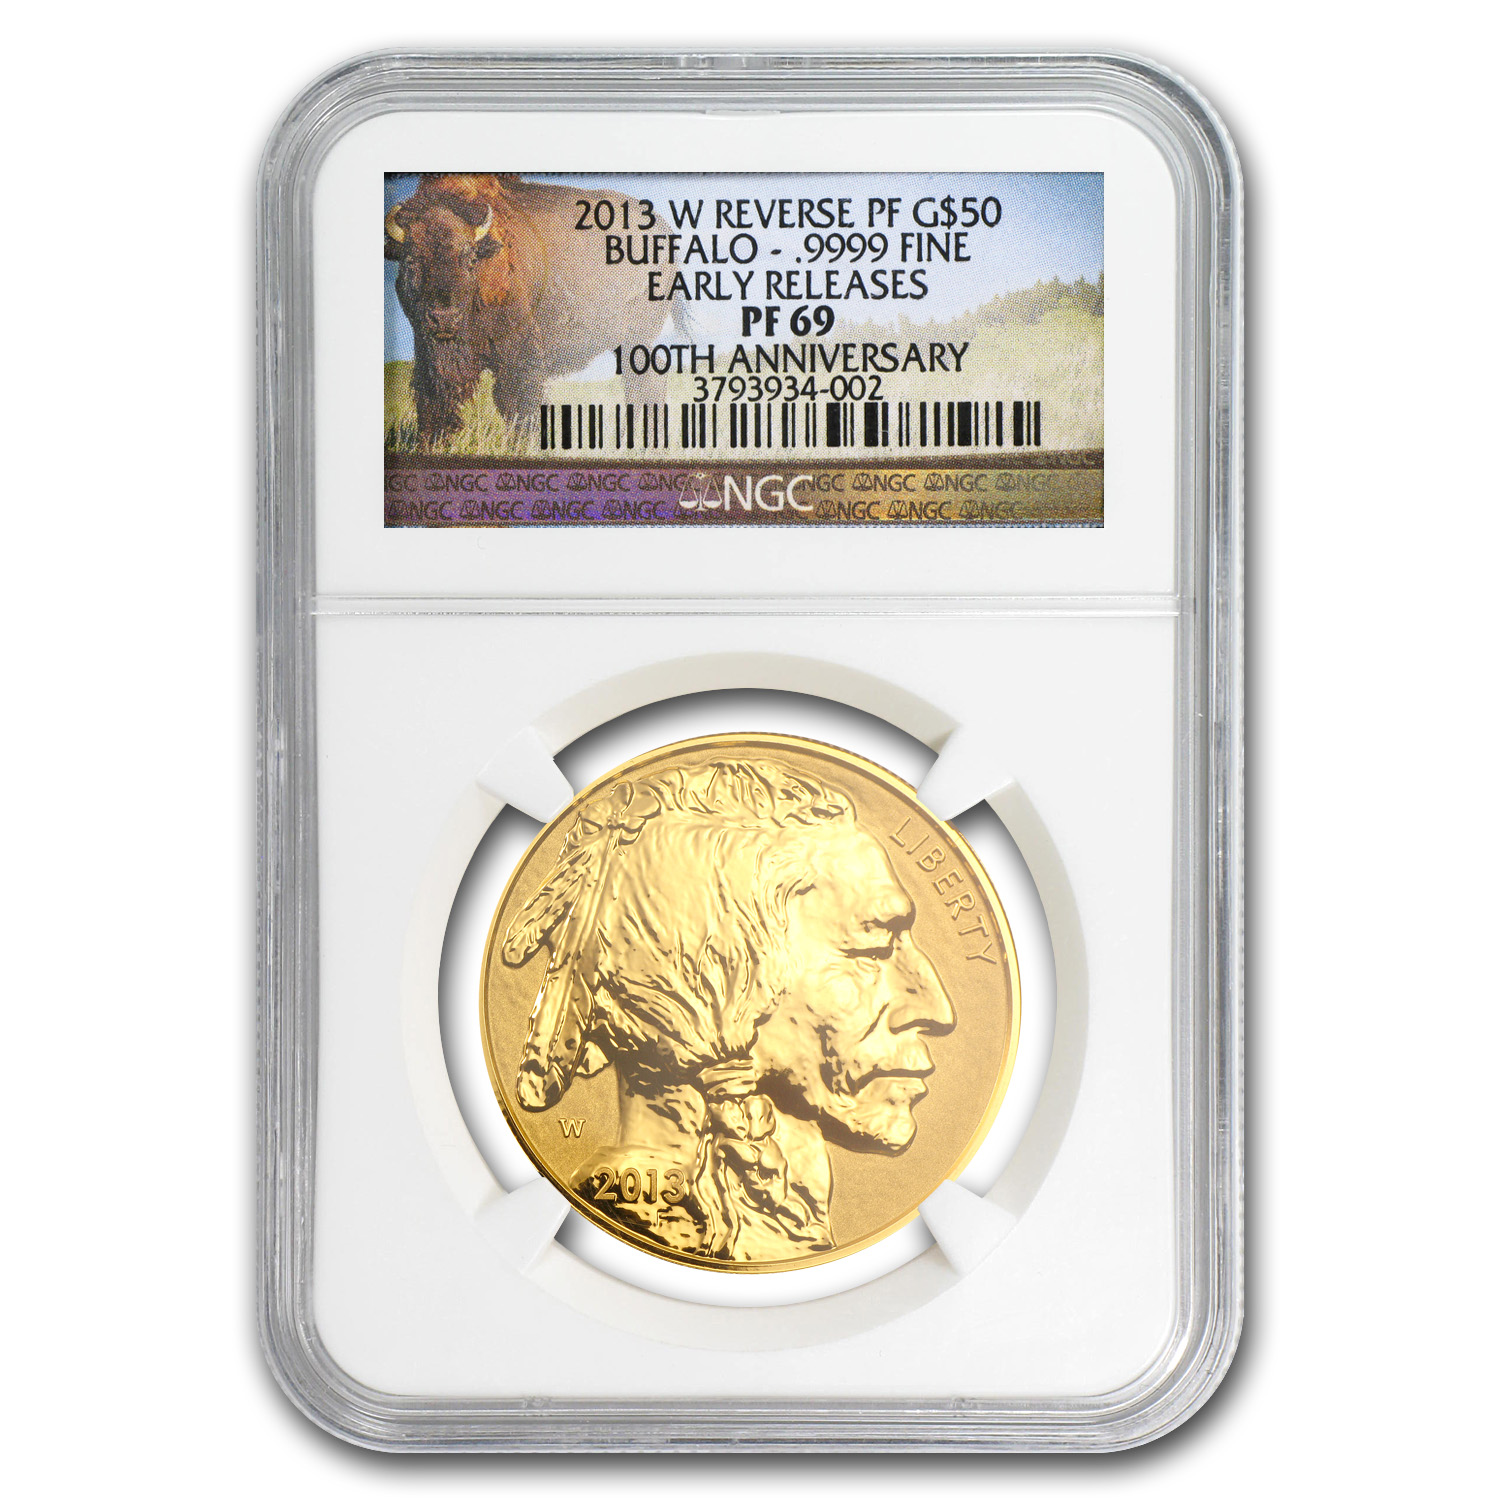 2013-W 1 oz Rev Proof Gold Buffalo Proof-69 PCGS/NGC (Random)